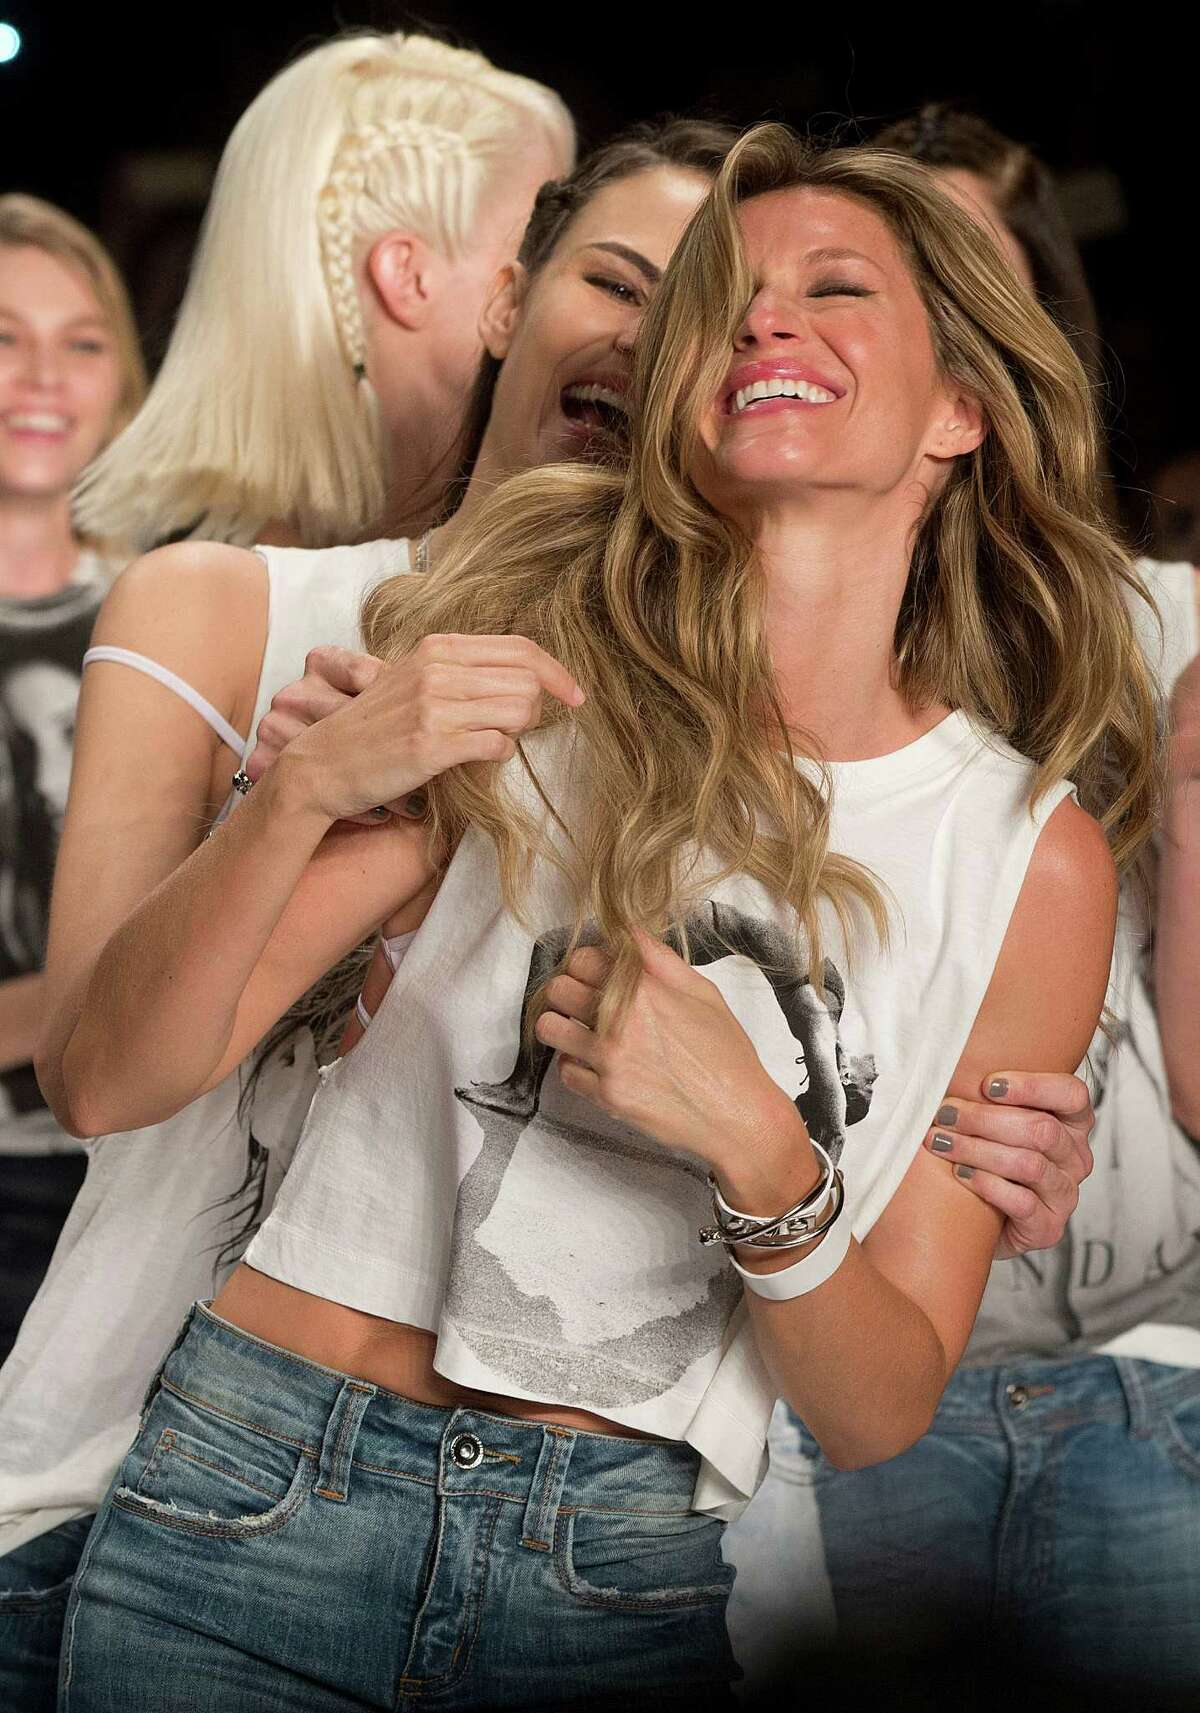 In this Wednesday, April 15, 2015 photo, Brazilian super model Gisele Bundchen celebrates with fellow Brazilian model Fernanda Tavares at the end of the show from the Colcci Summer collection at Sao Paulo Fashion Week in Sao Paulo, Brazil. Bundchen, the Brazilian supermodel who has lit up catwalks around the world for 20 years, retired from the runway.